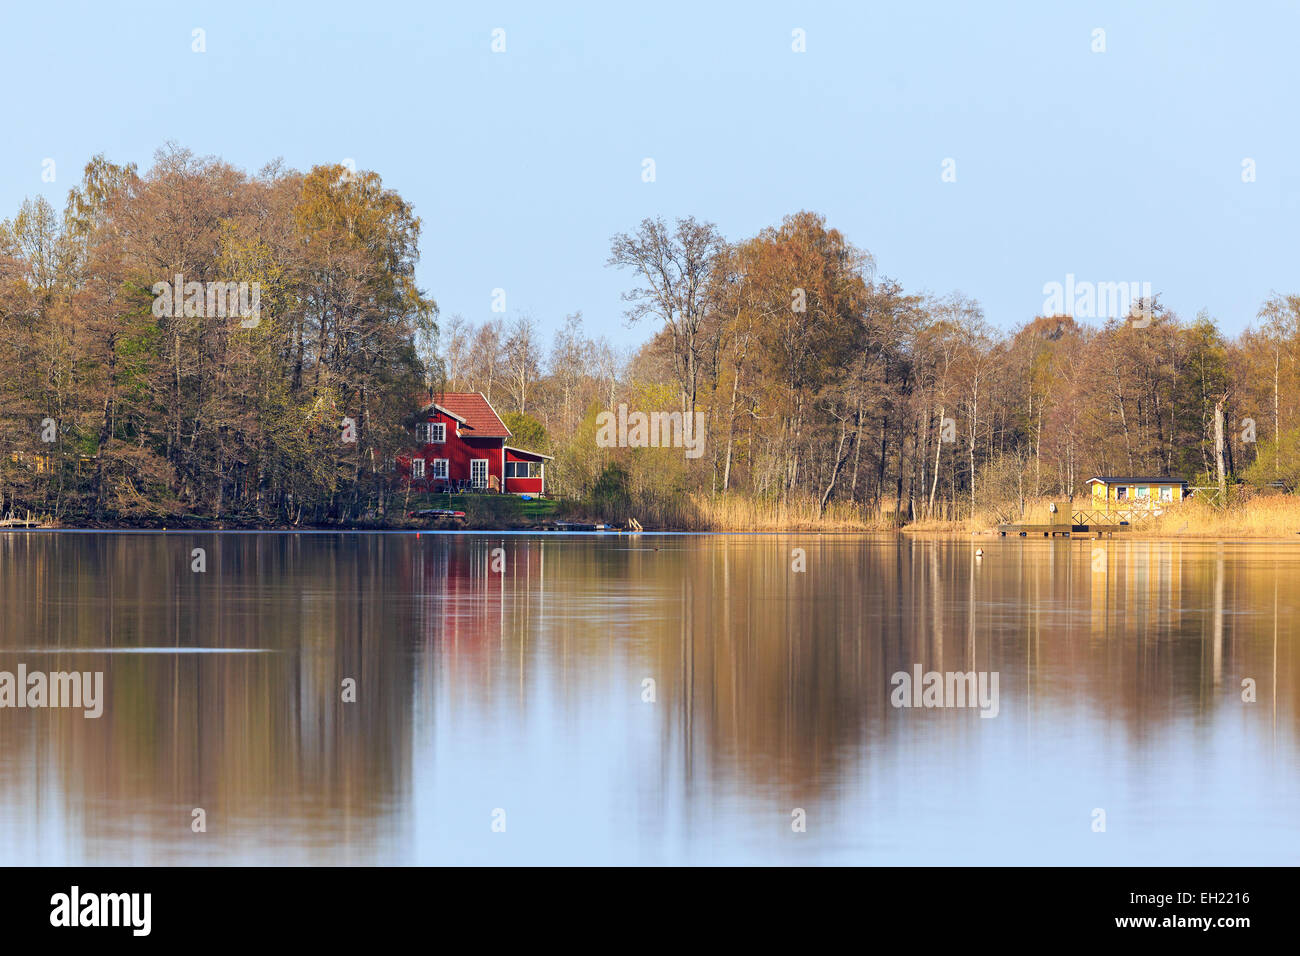 Houses at the lake in spring - Stock Image